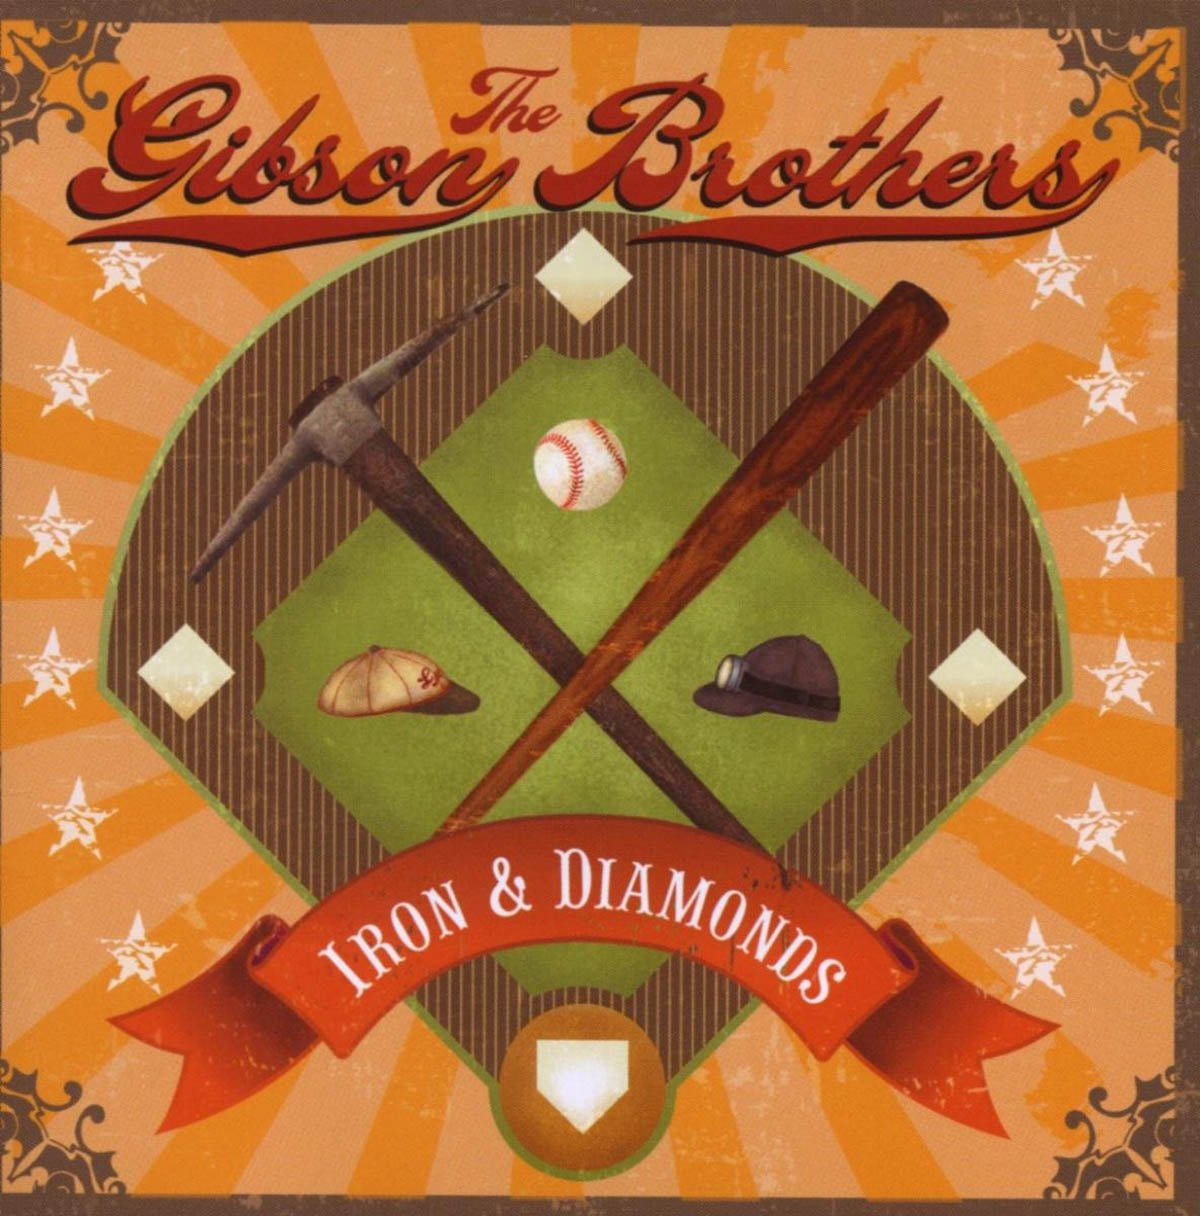 The Gibson Brothers, Iron & Diamonds